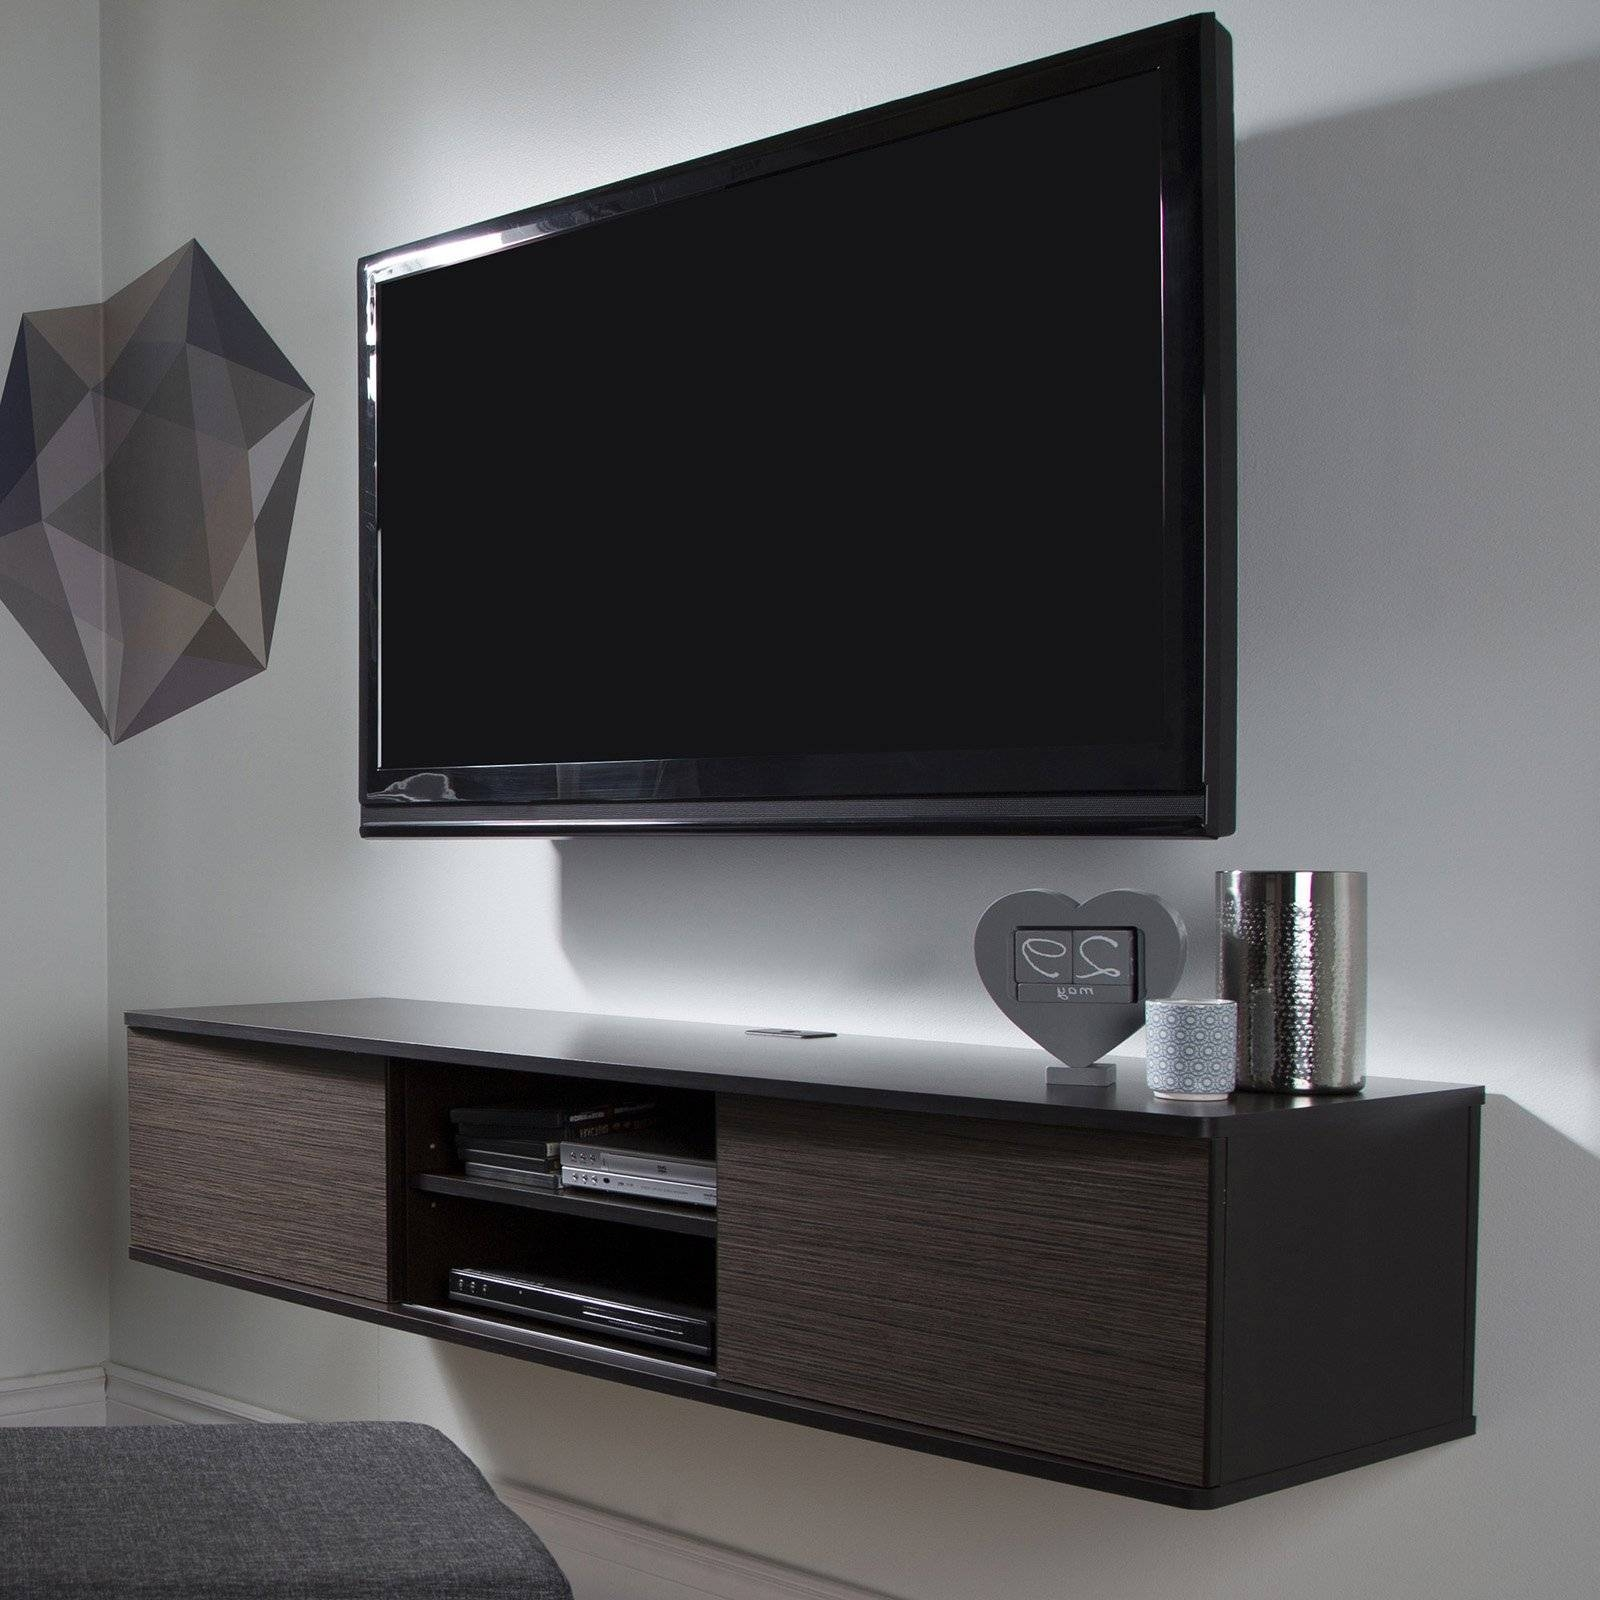 Contemporary & Modern Tv Stands | Hayneedle For Modern Low Profile Tv Stands (View 14 of 15)